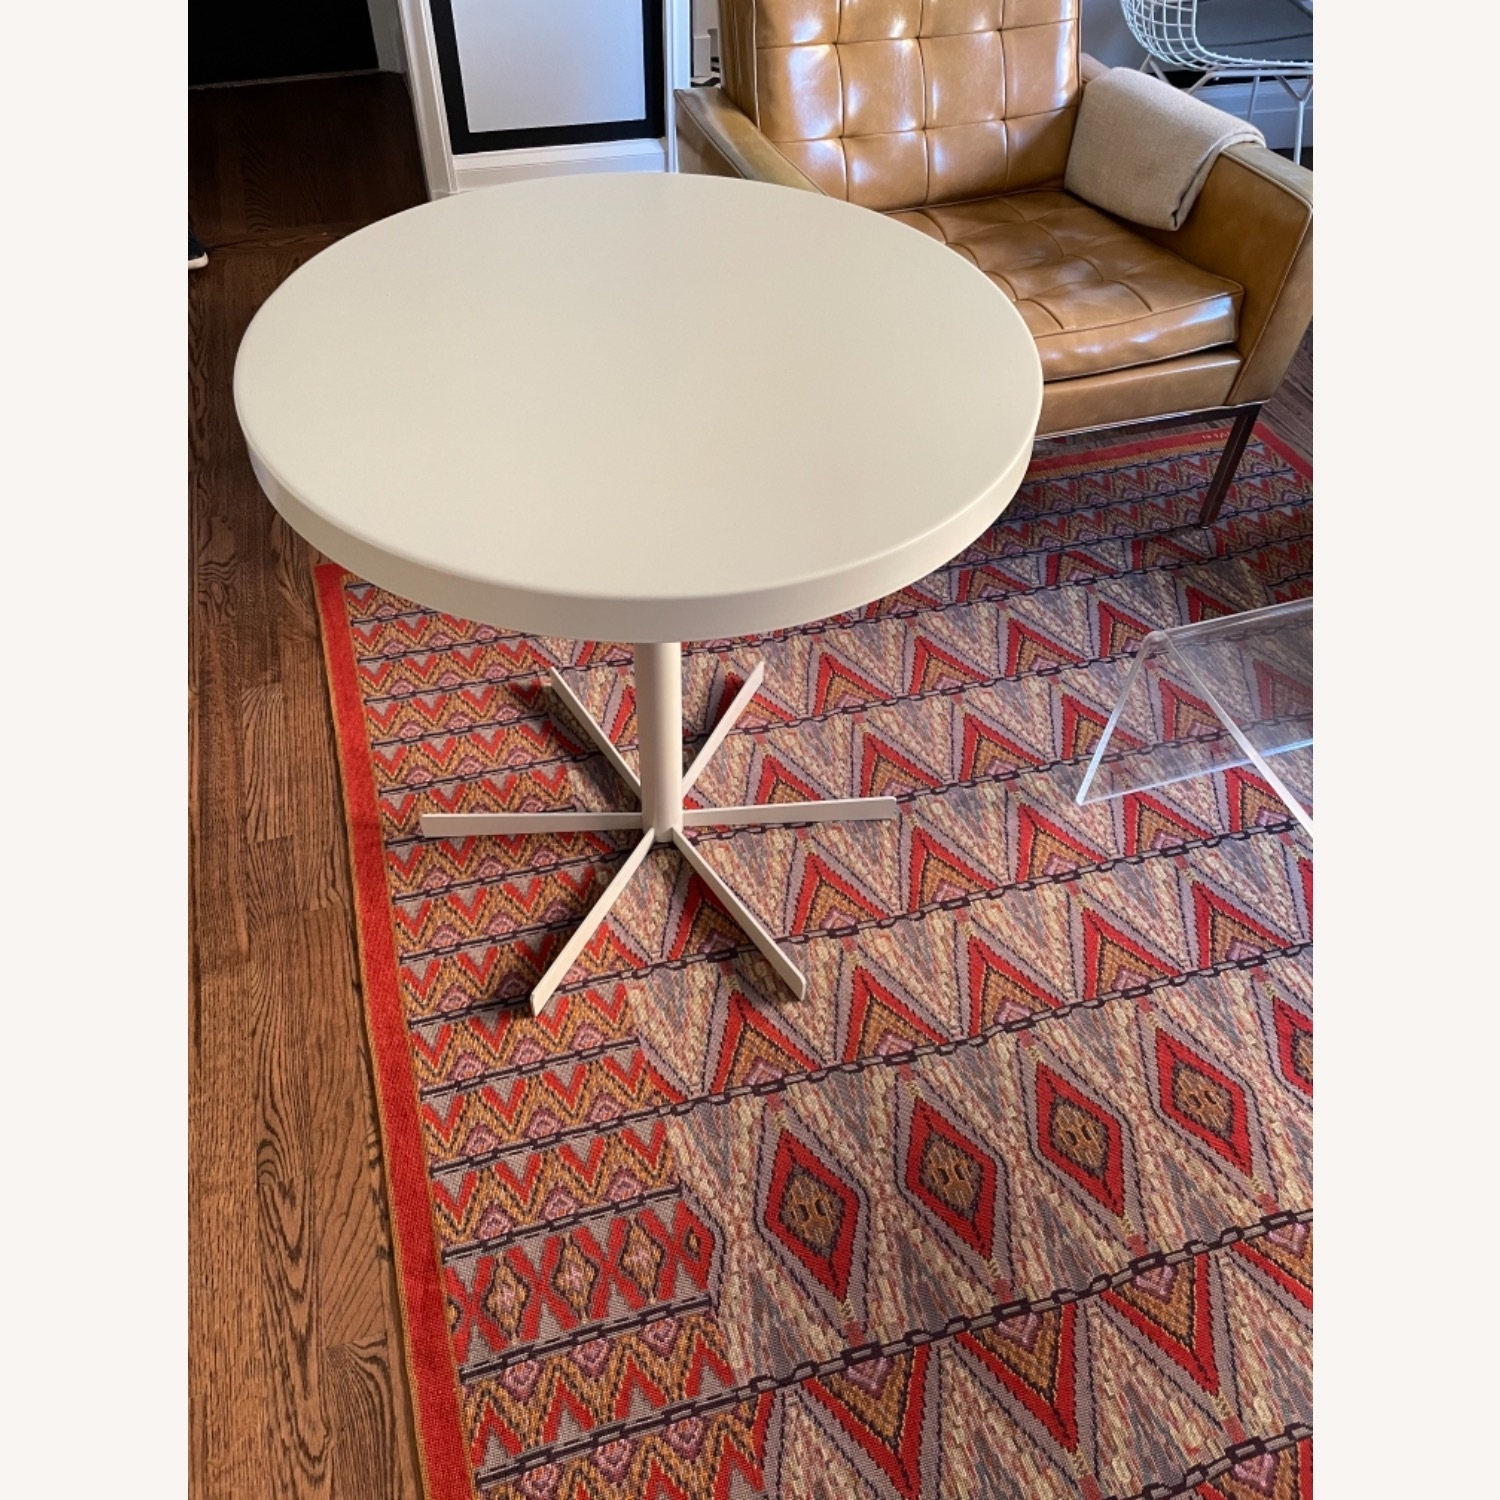 Room & Board Penelope Outdoor Cafe Table White - image-1